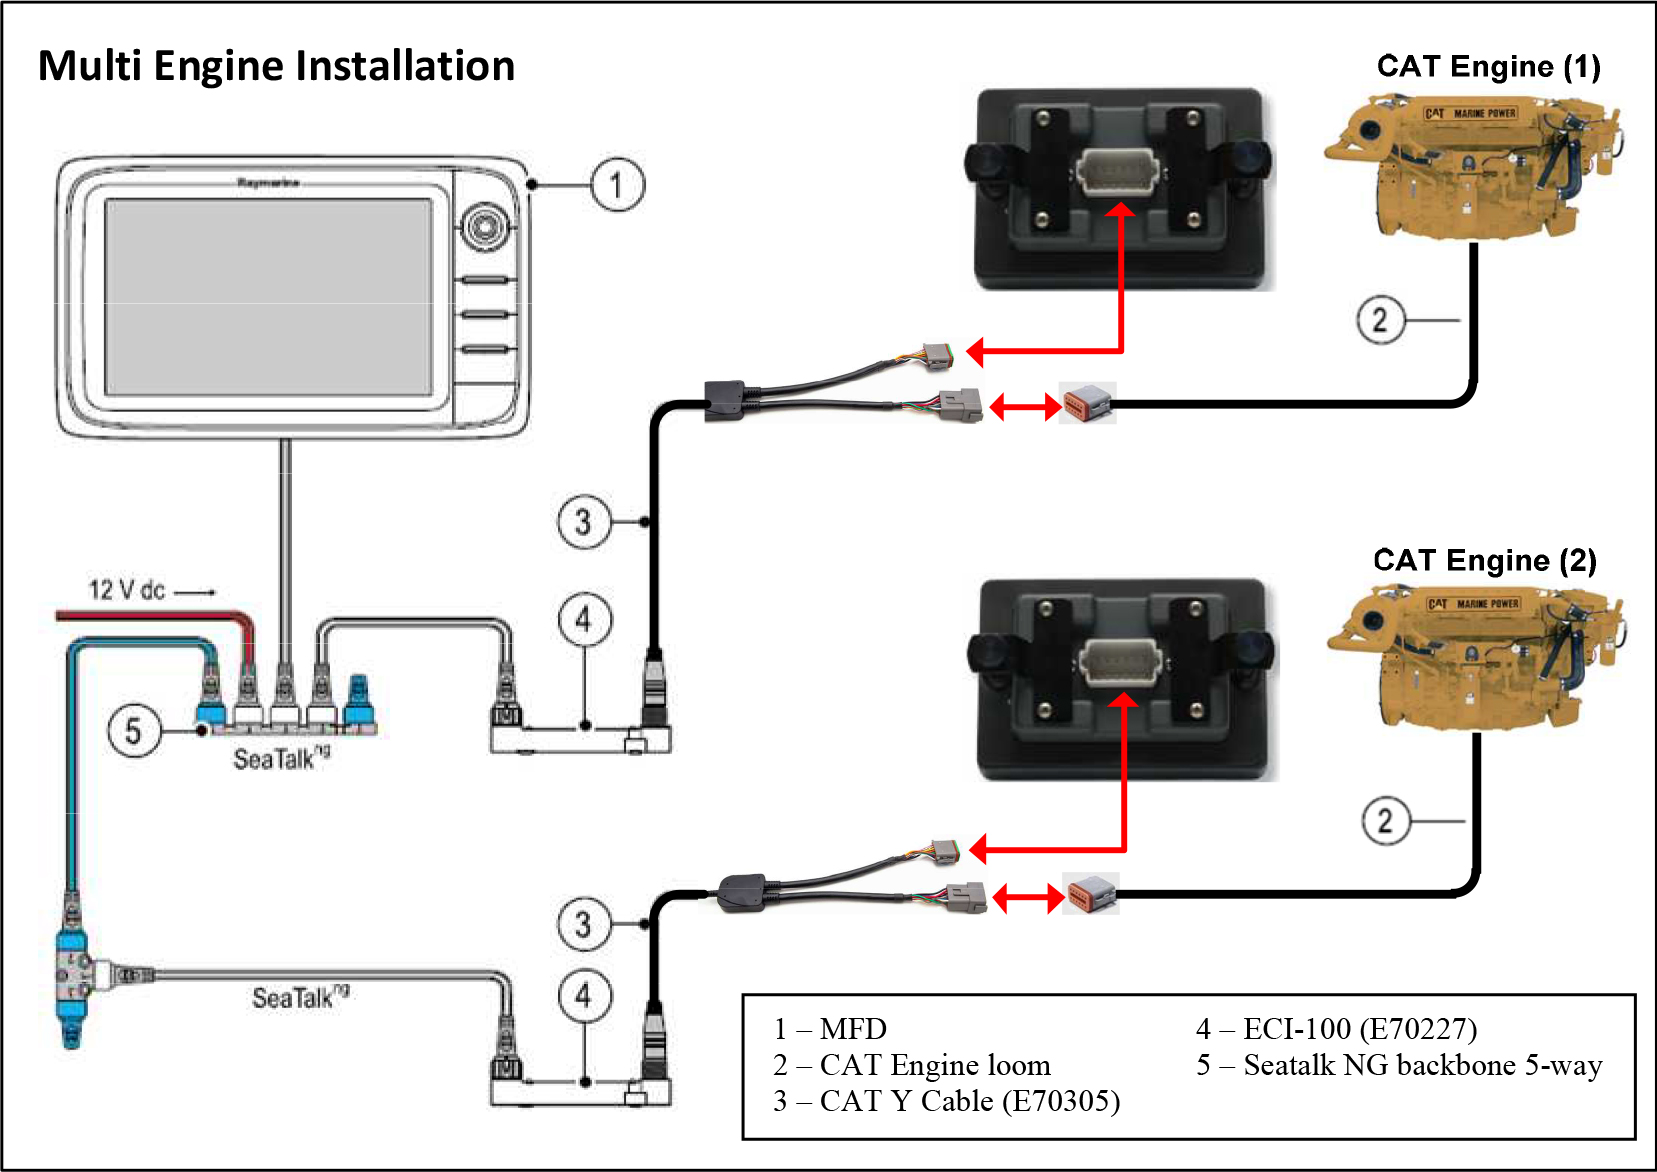 CAT-Install4 Raymarine Axiom Wiring Diagram on fluxgate compass, patch cable, b256 transducer, gps antenna, c120 cable for radar, seatalk hs,